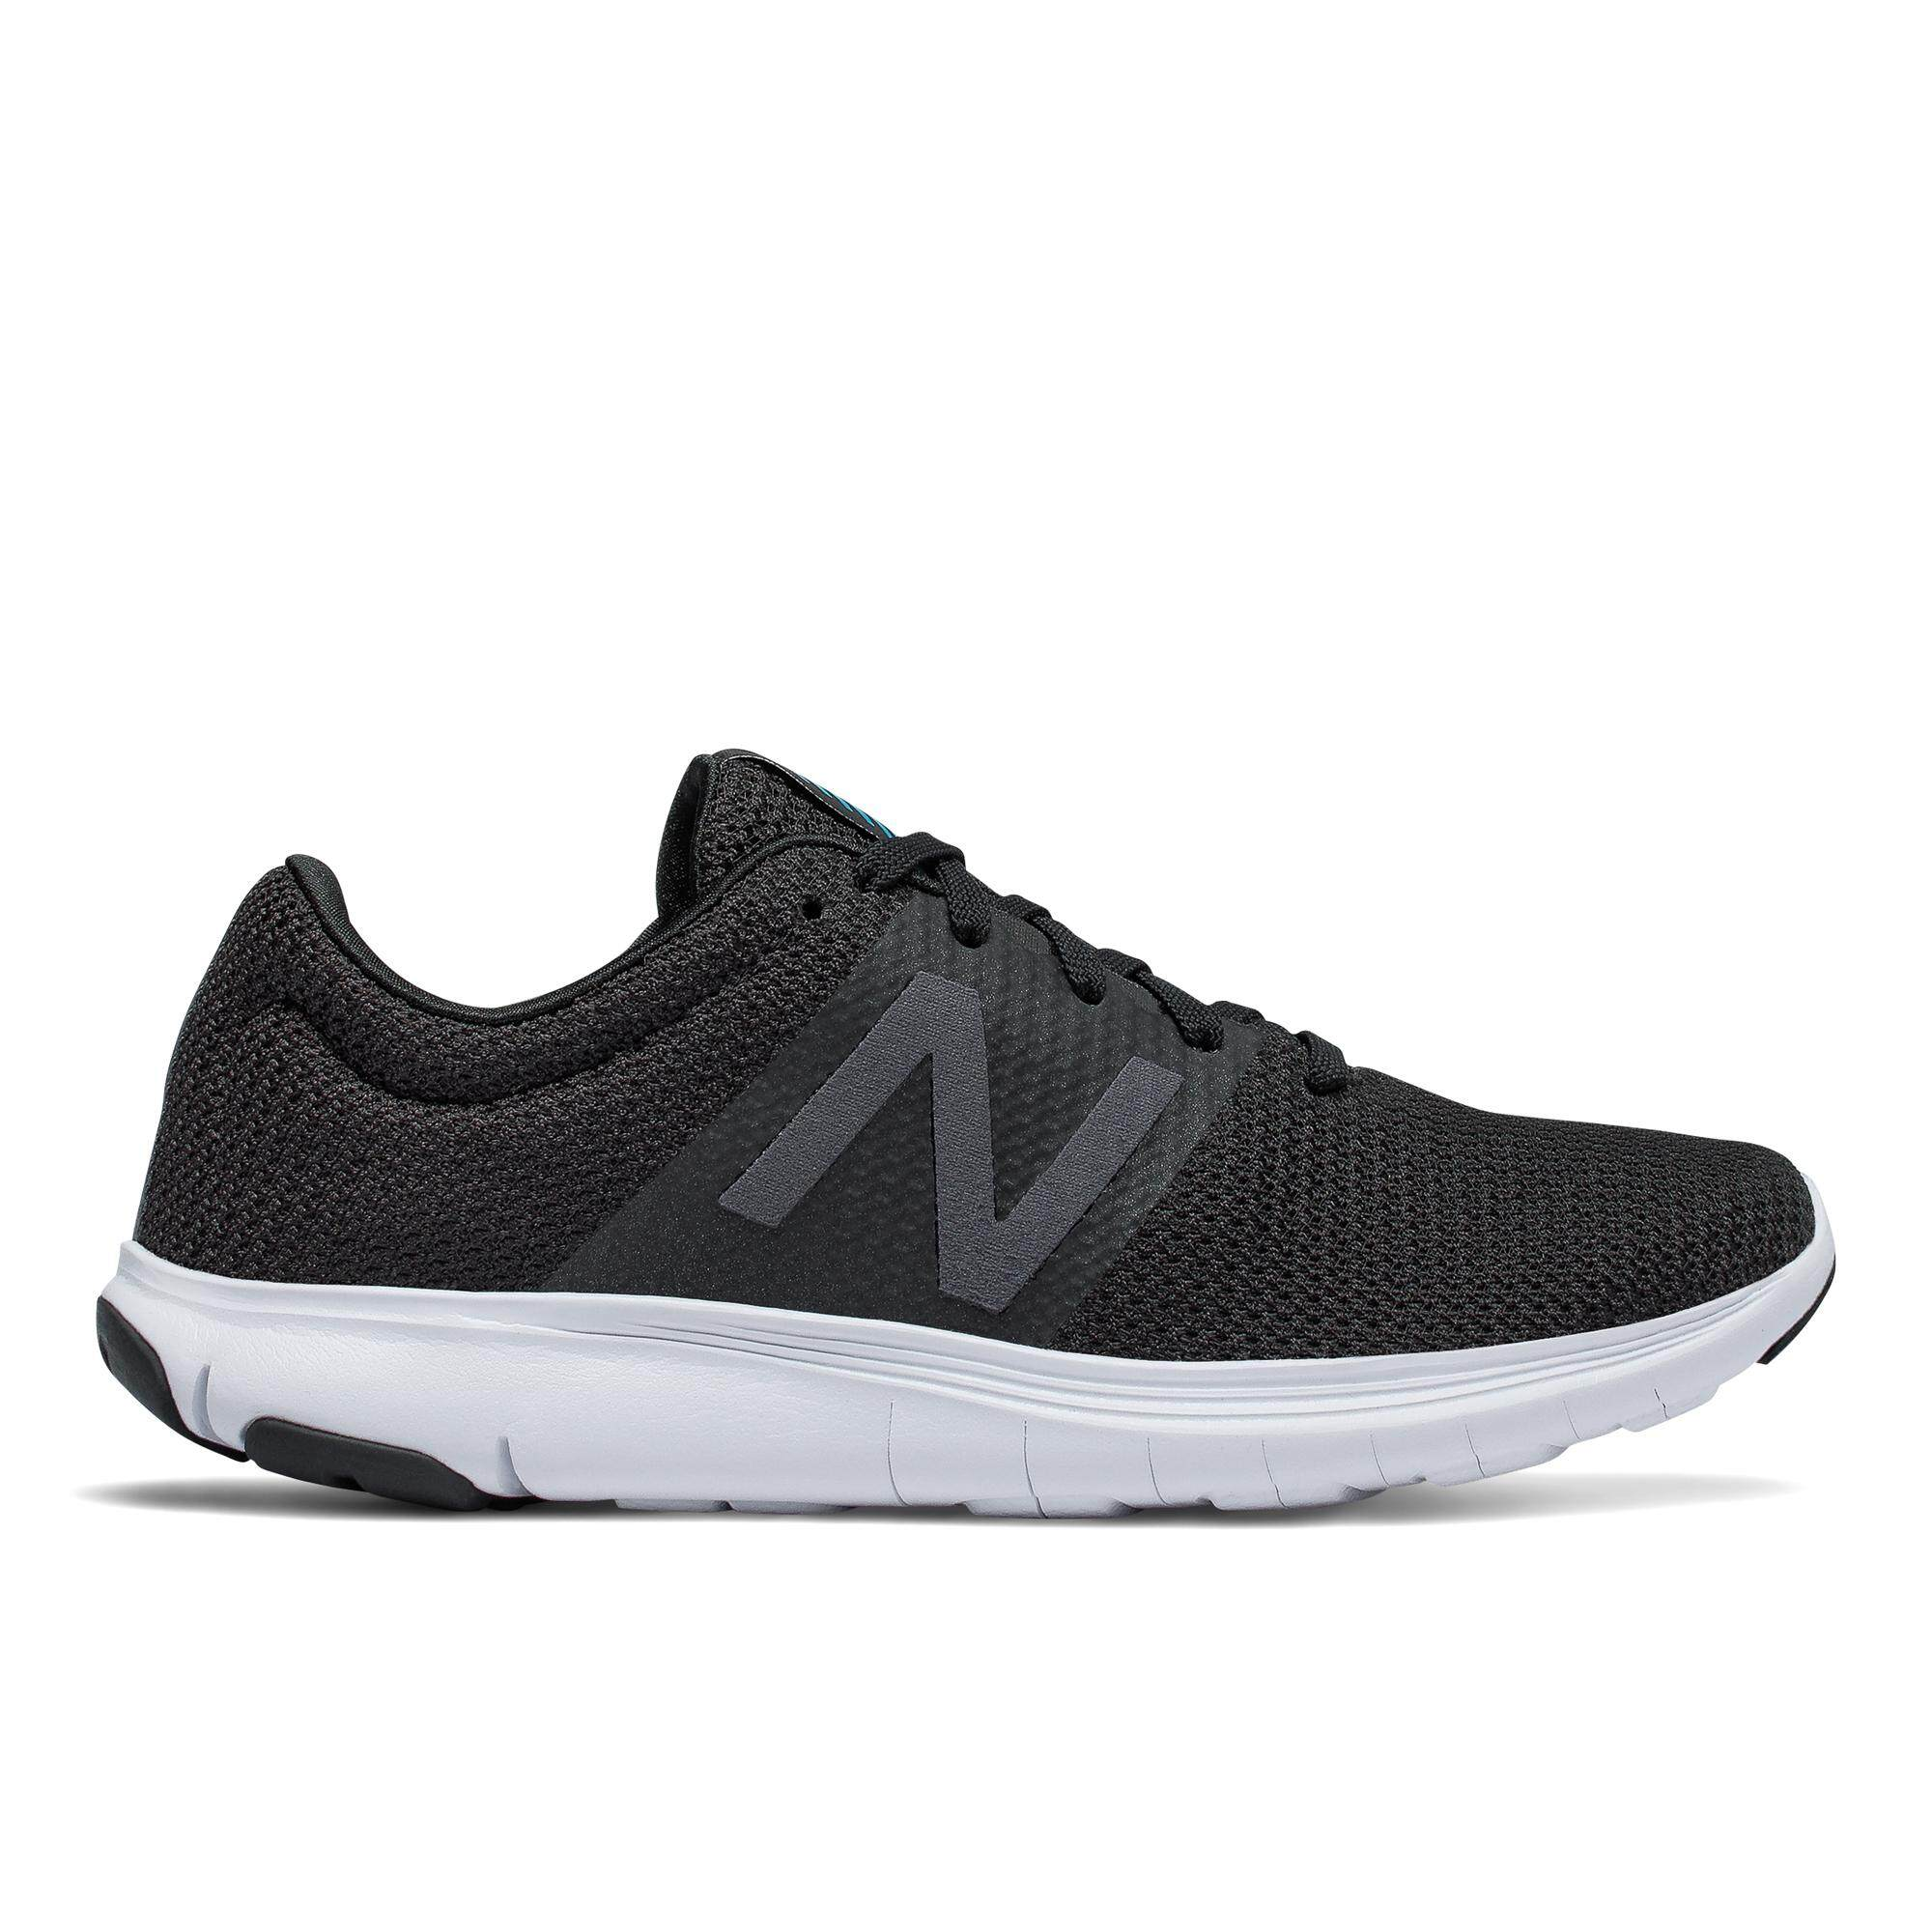 1b2a01ed7d New Balance Official Store - Buy New Balance Official Store at Best ...